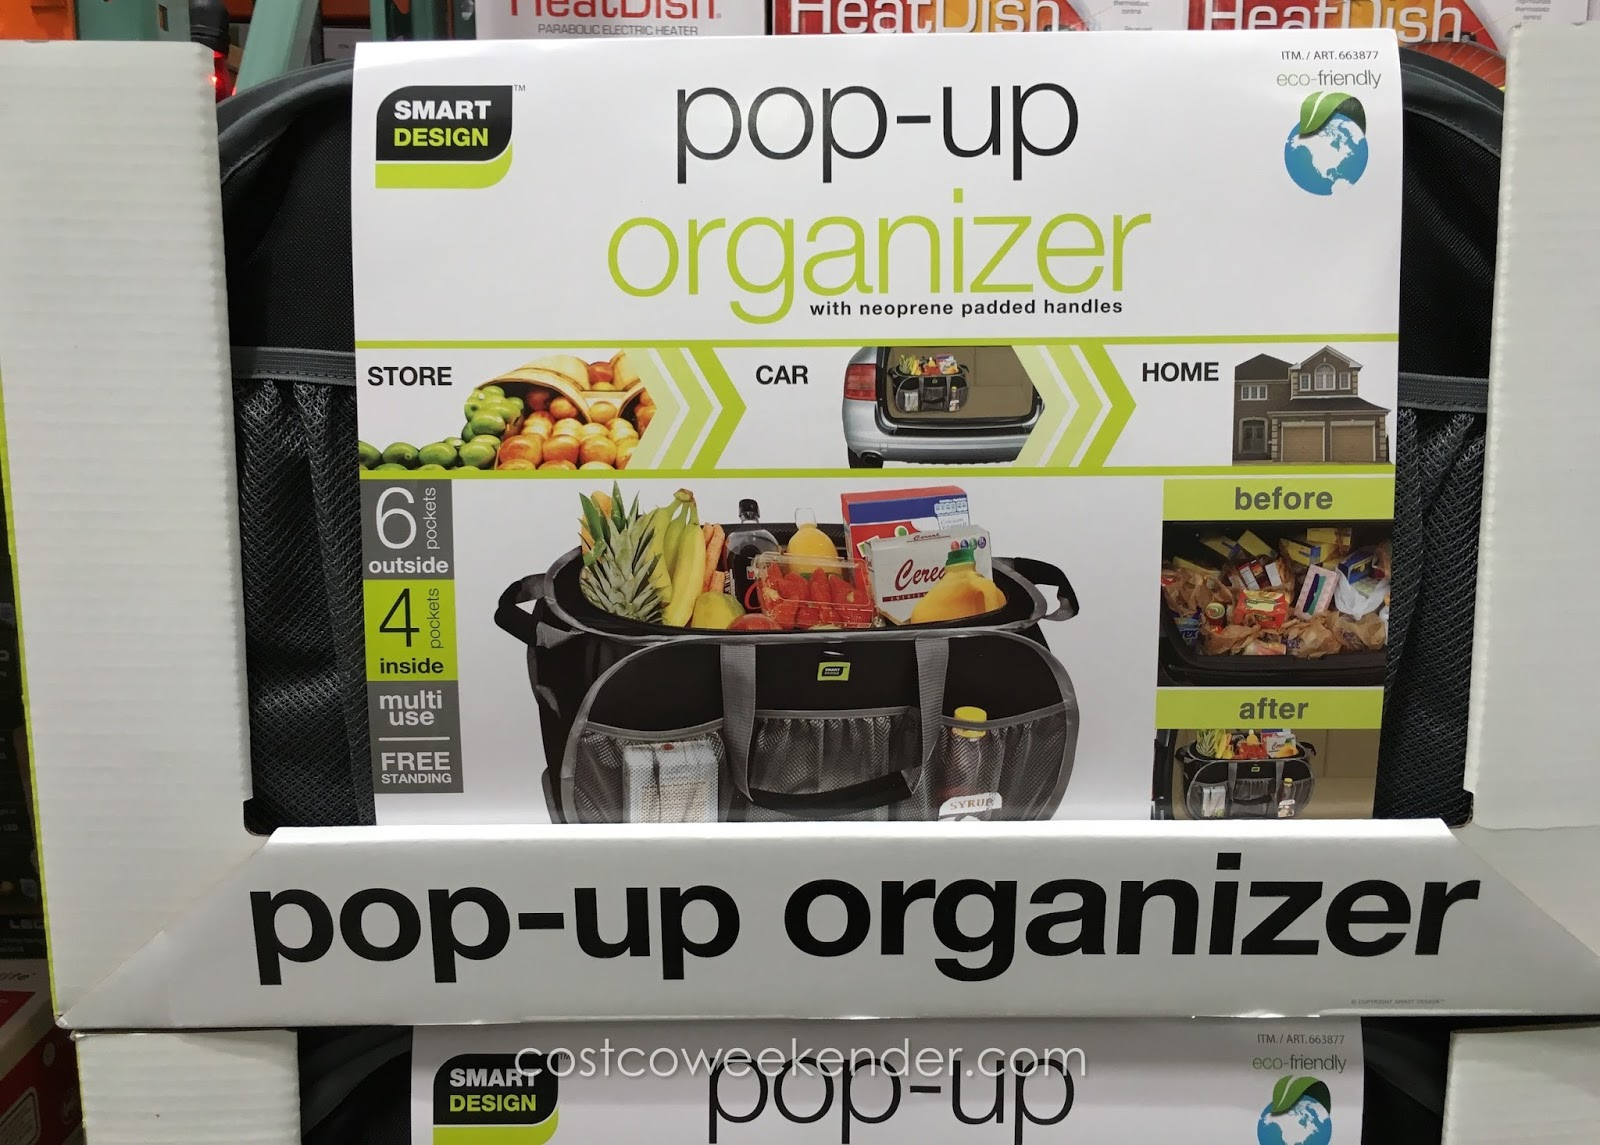 Costco 663877 - Store the Smart Design Pop-Up Organizer in your car or use it around the house